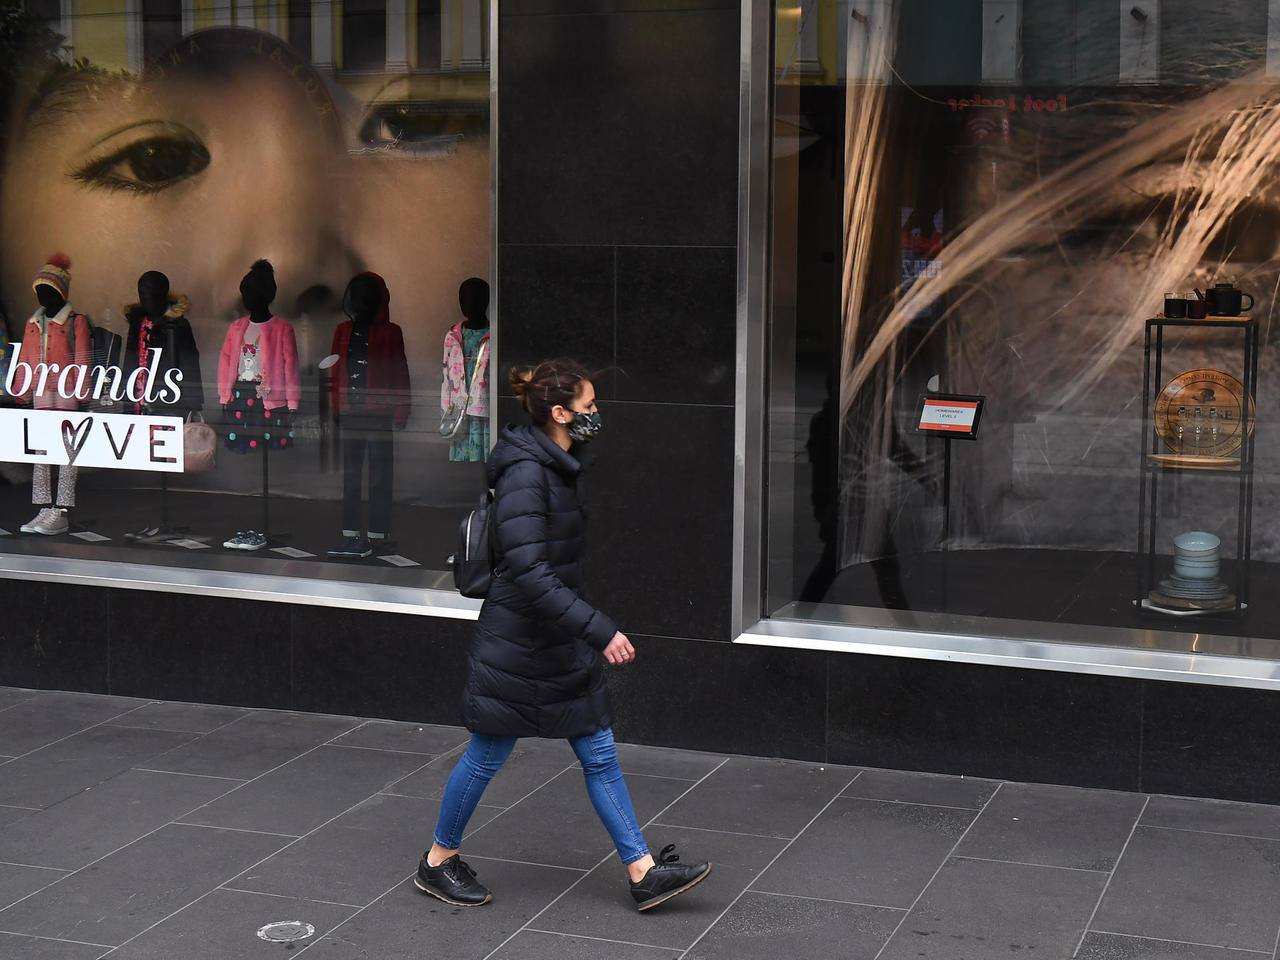 Australia recession adds to global economic virus woes